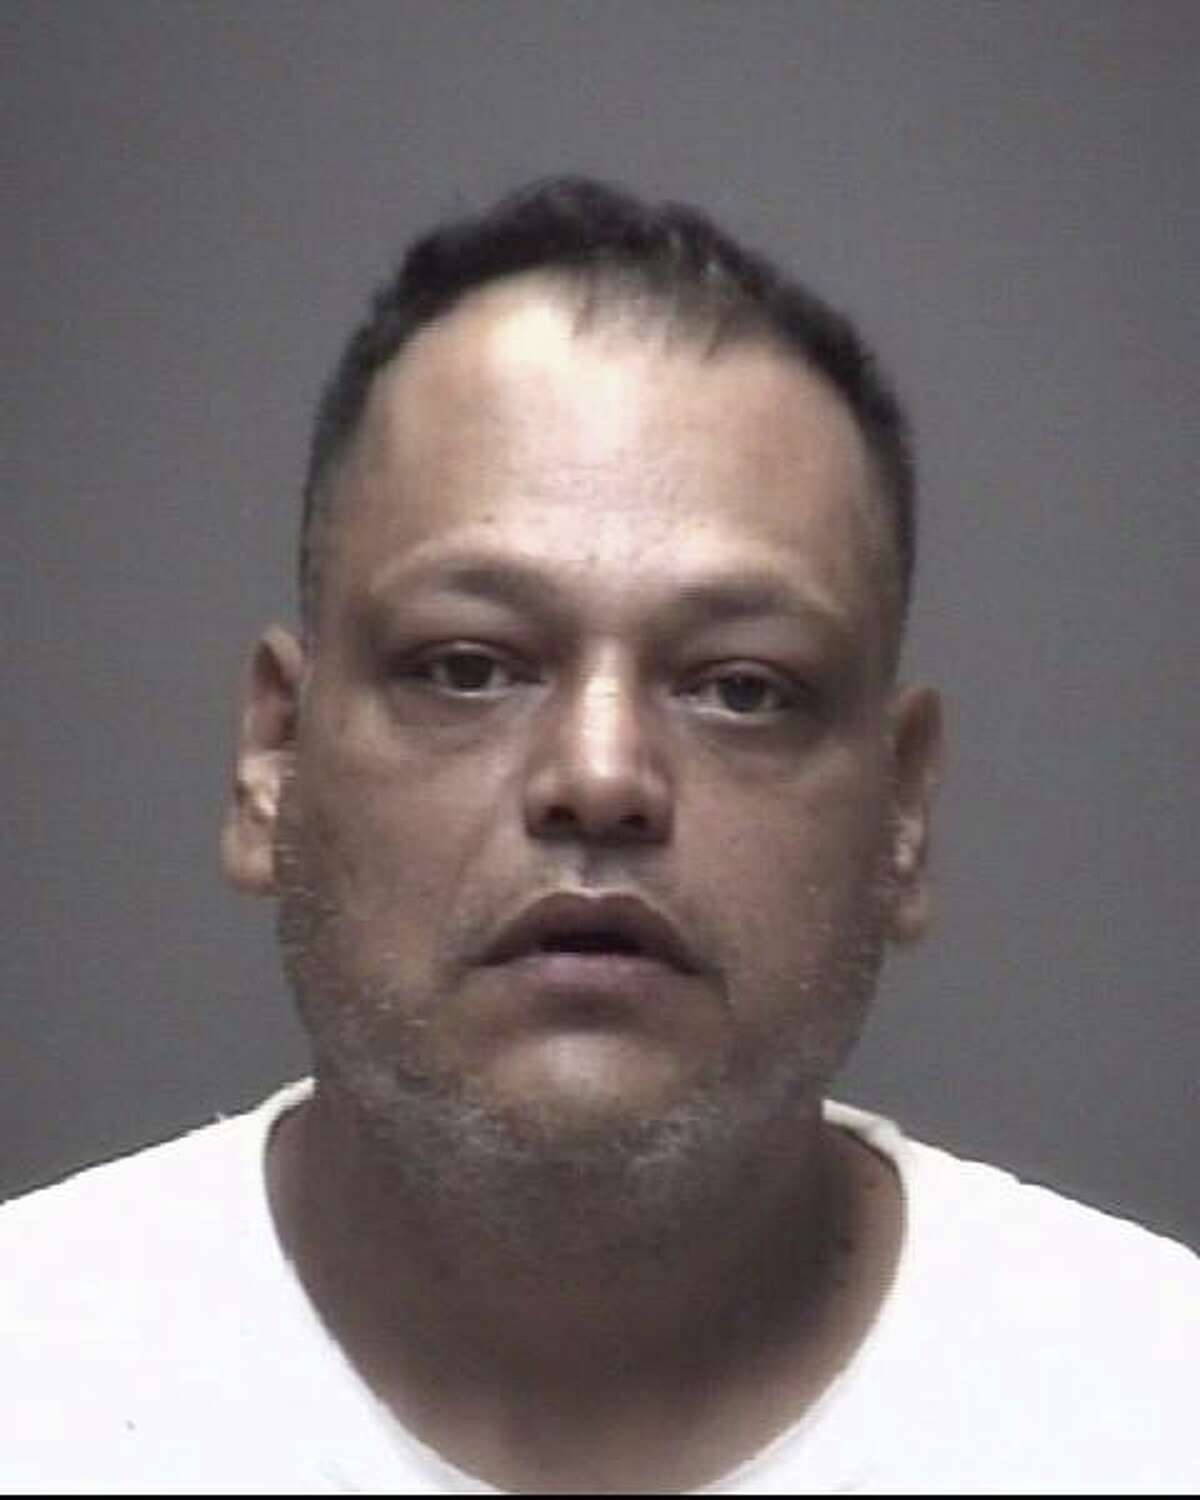 Alejandro Cruz, 45, is charged with drug possession in Galveston County and has warrants out of Harris County. He is being held in the Galveston County Jail on a bond of $1.521 million.